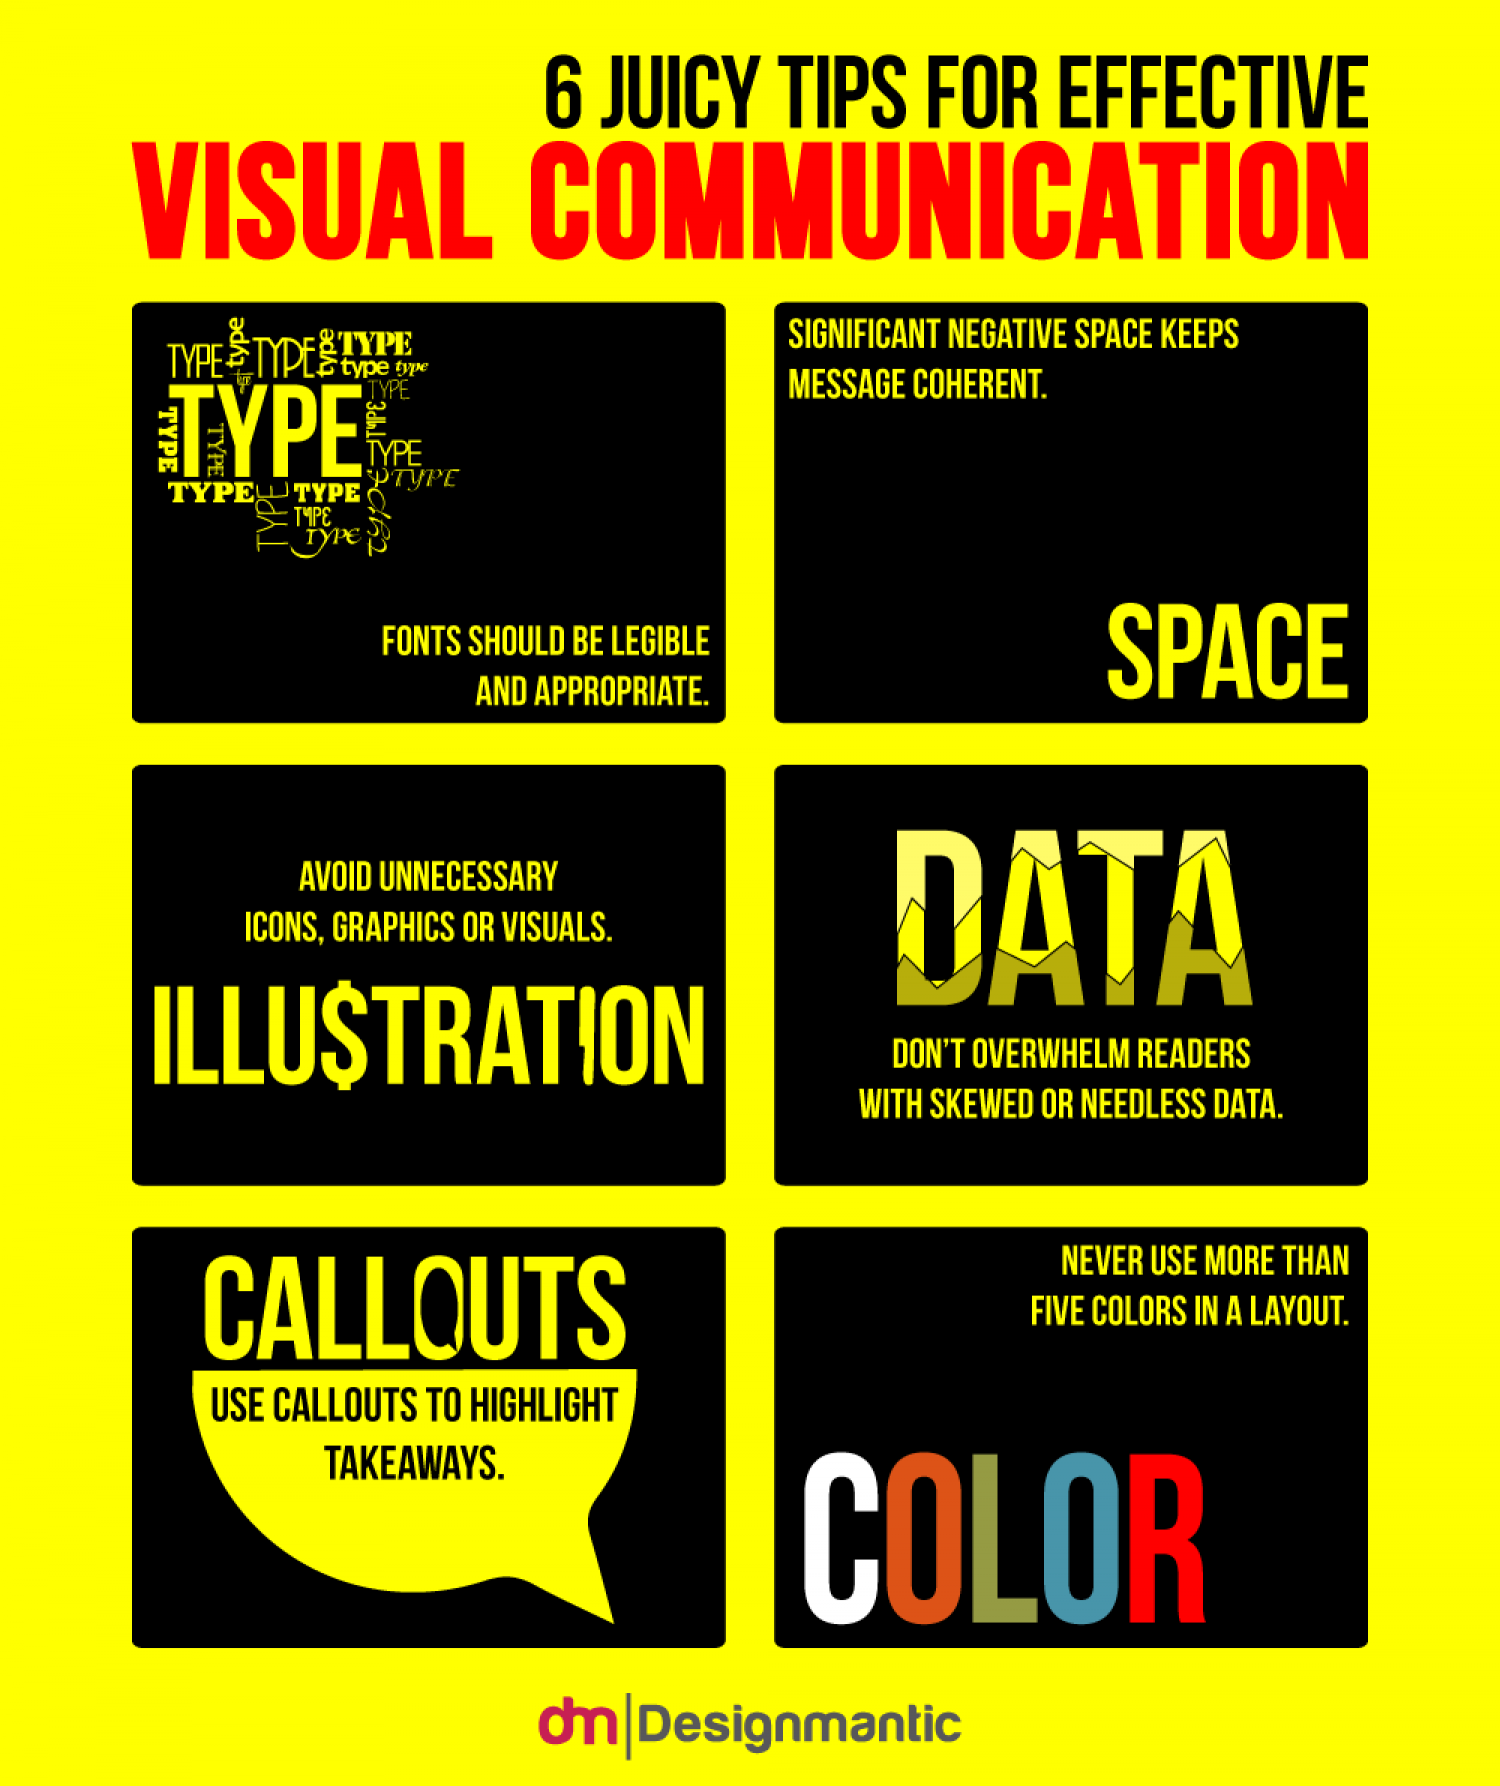 6 Juicy Tips For Effective Visual Communication Infographic